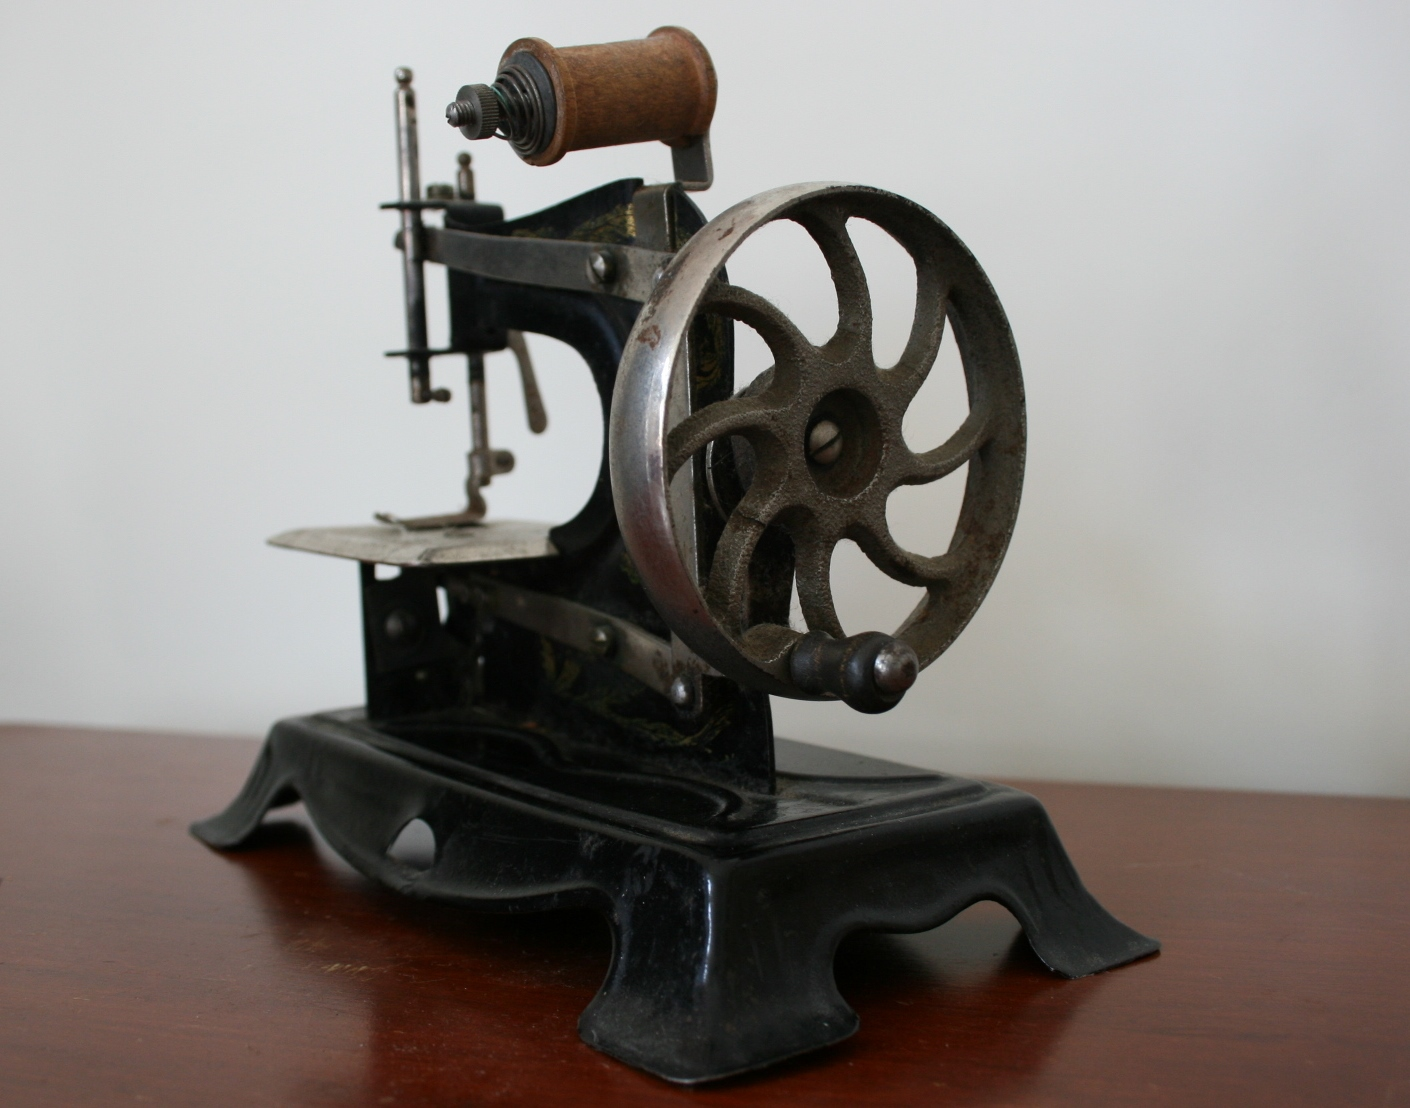 You May Have Noticed I Quite Like Old Things I Have My Mother S Chain Sch Sewing Machine Which She Used As A Child In The 1930s And 40s